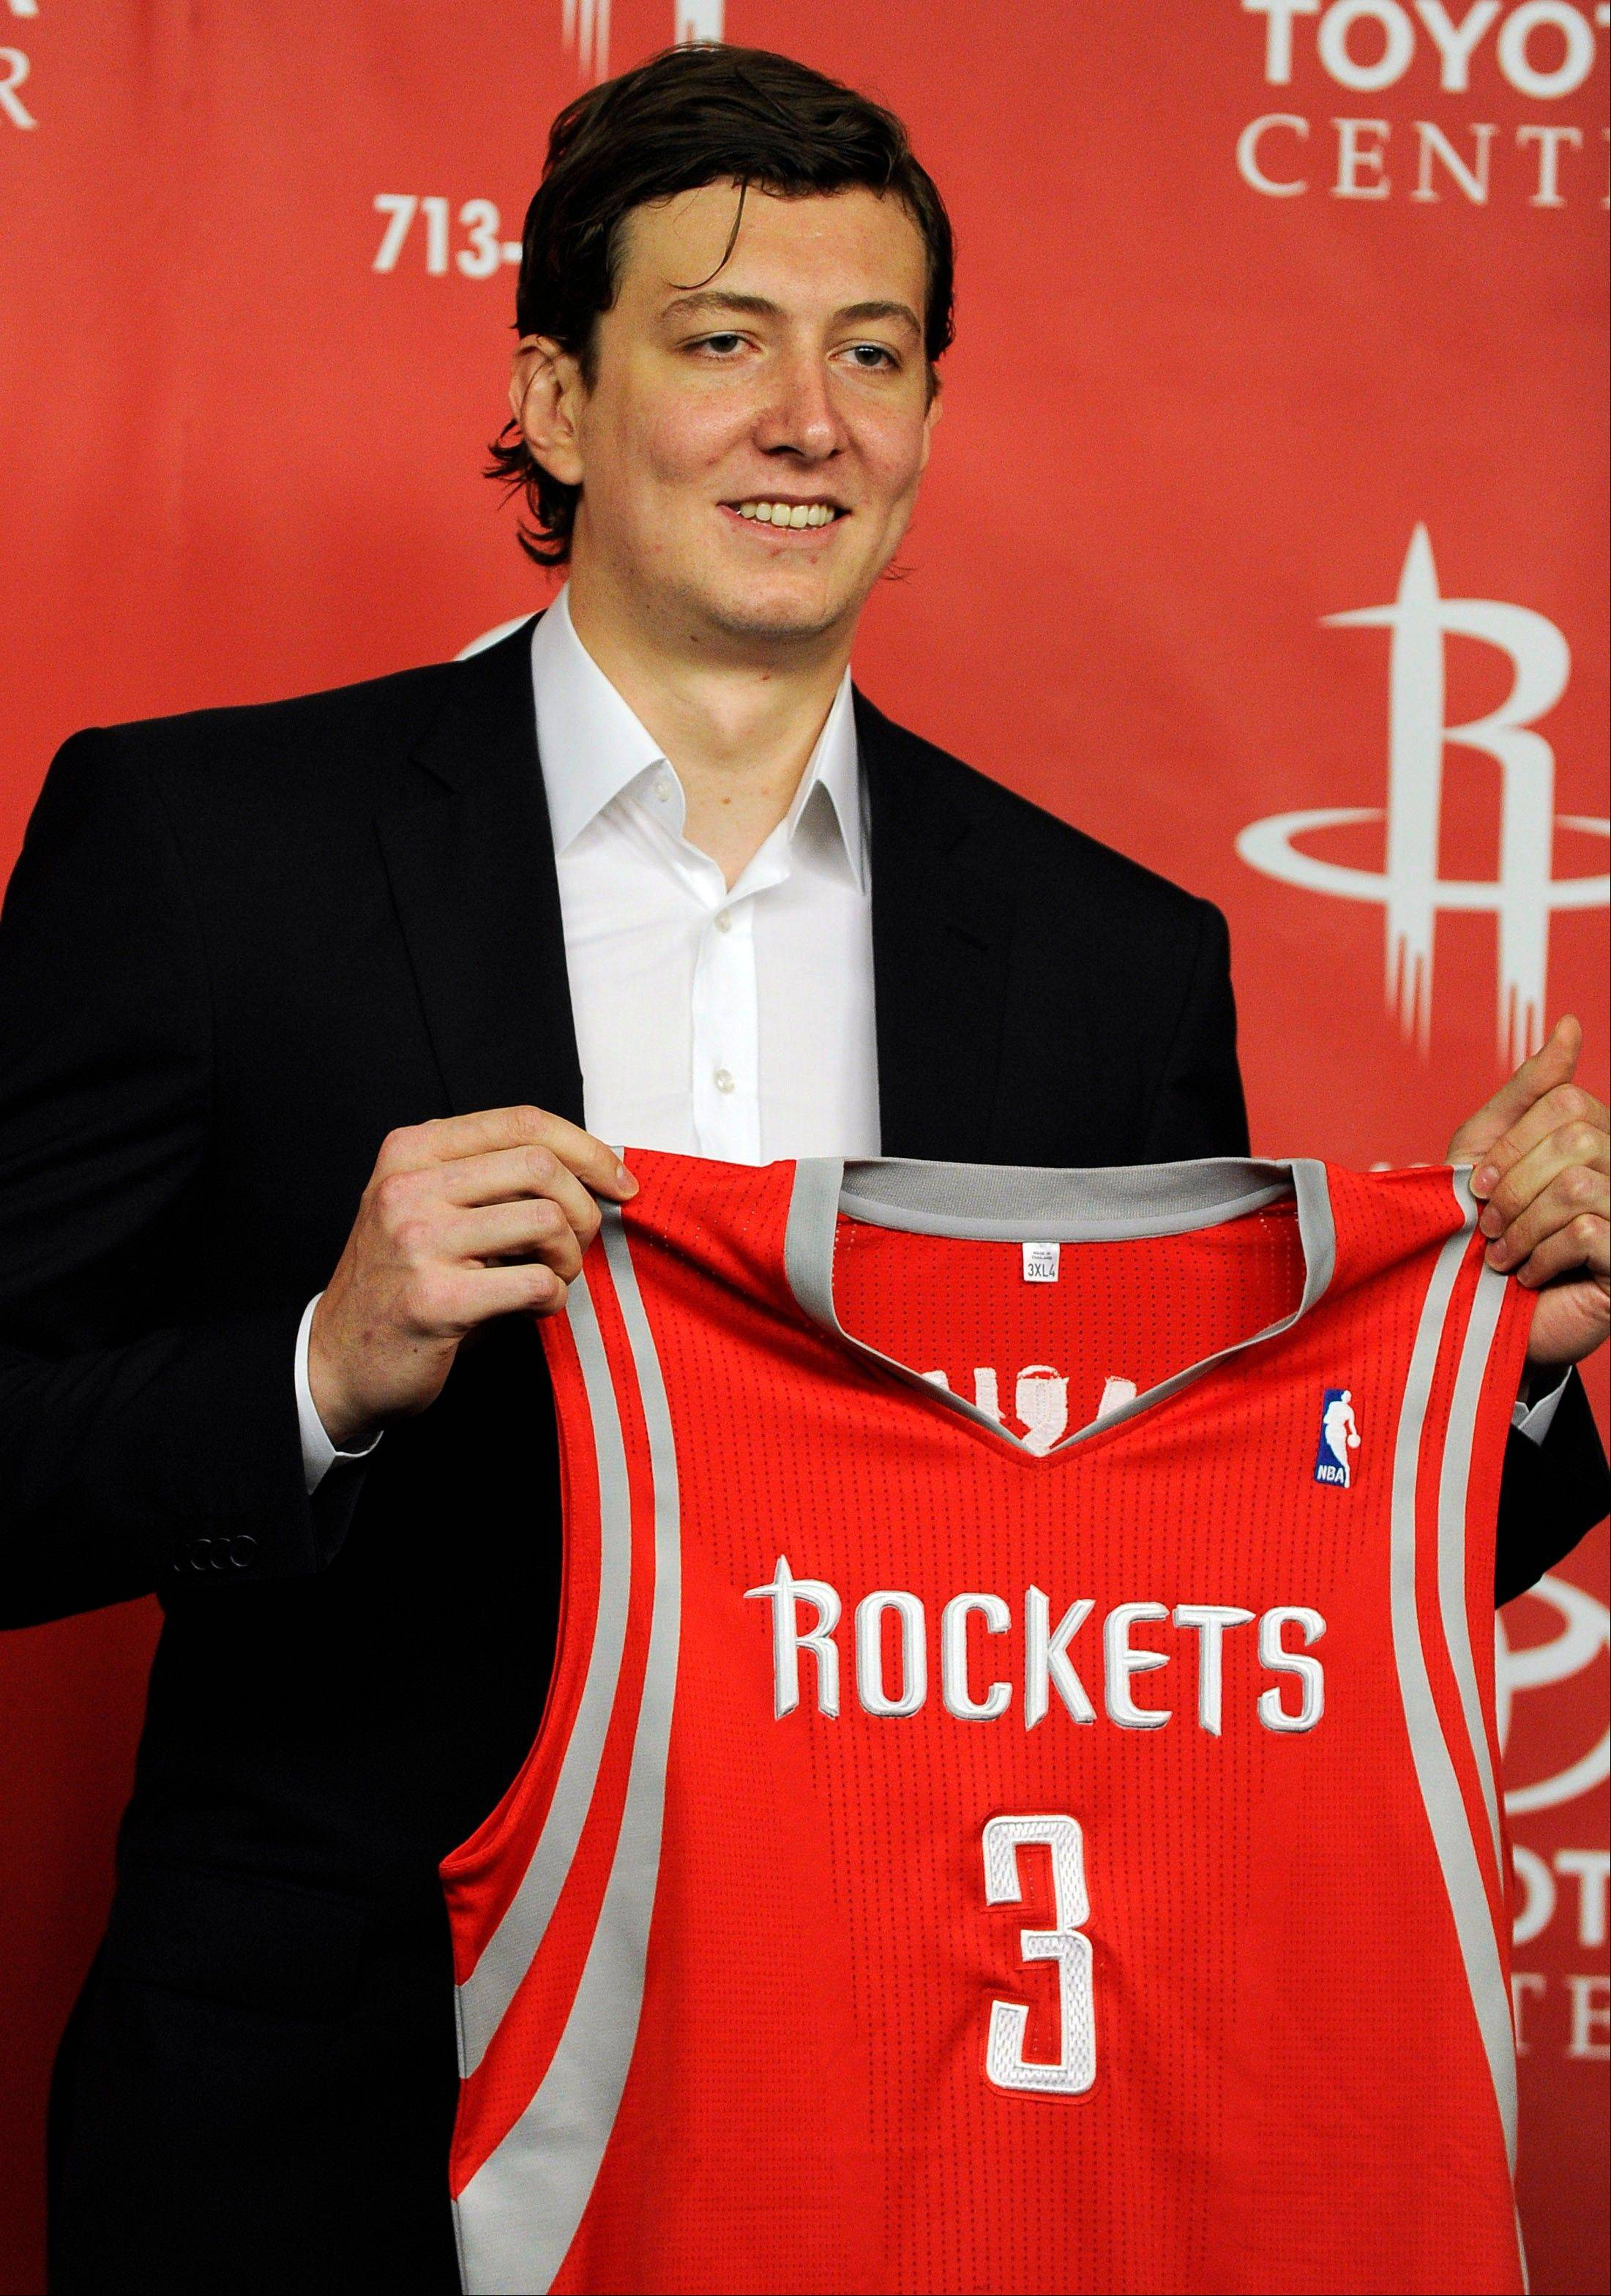 New Houston Rockets center Omer Asik signed a three-year, $25 million offer sheet and came to Houston when his former team, the Bulls, did not match.